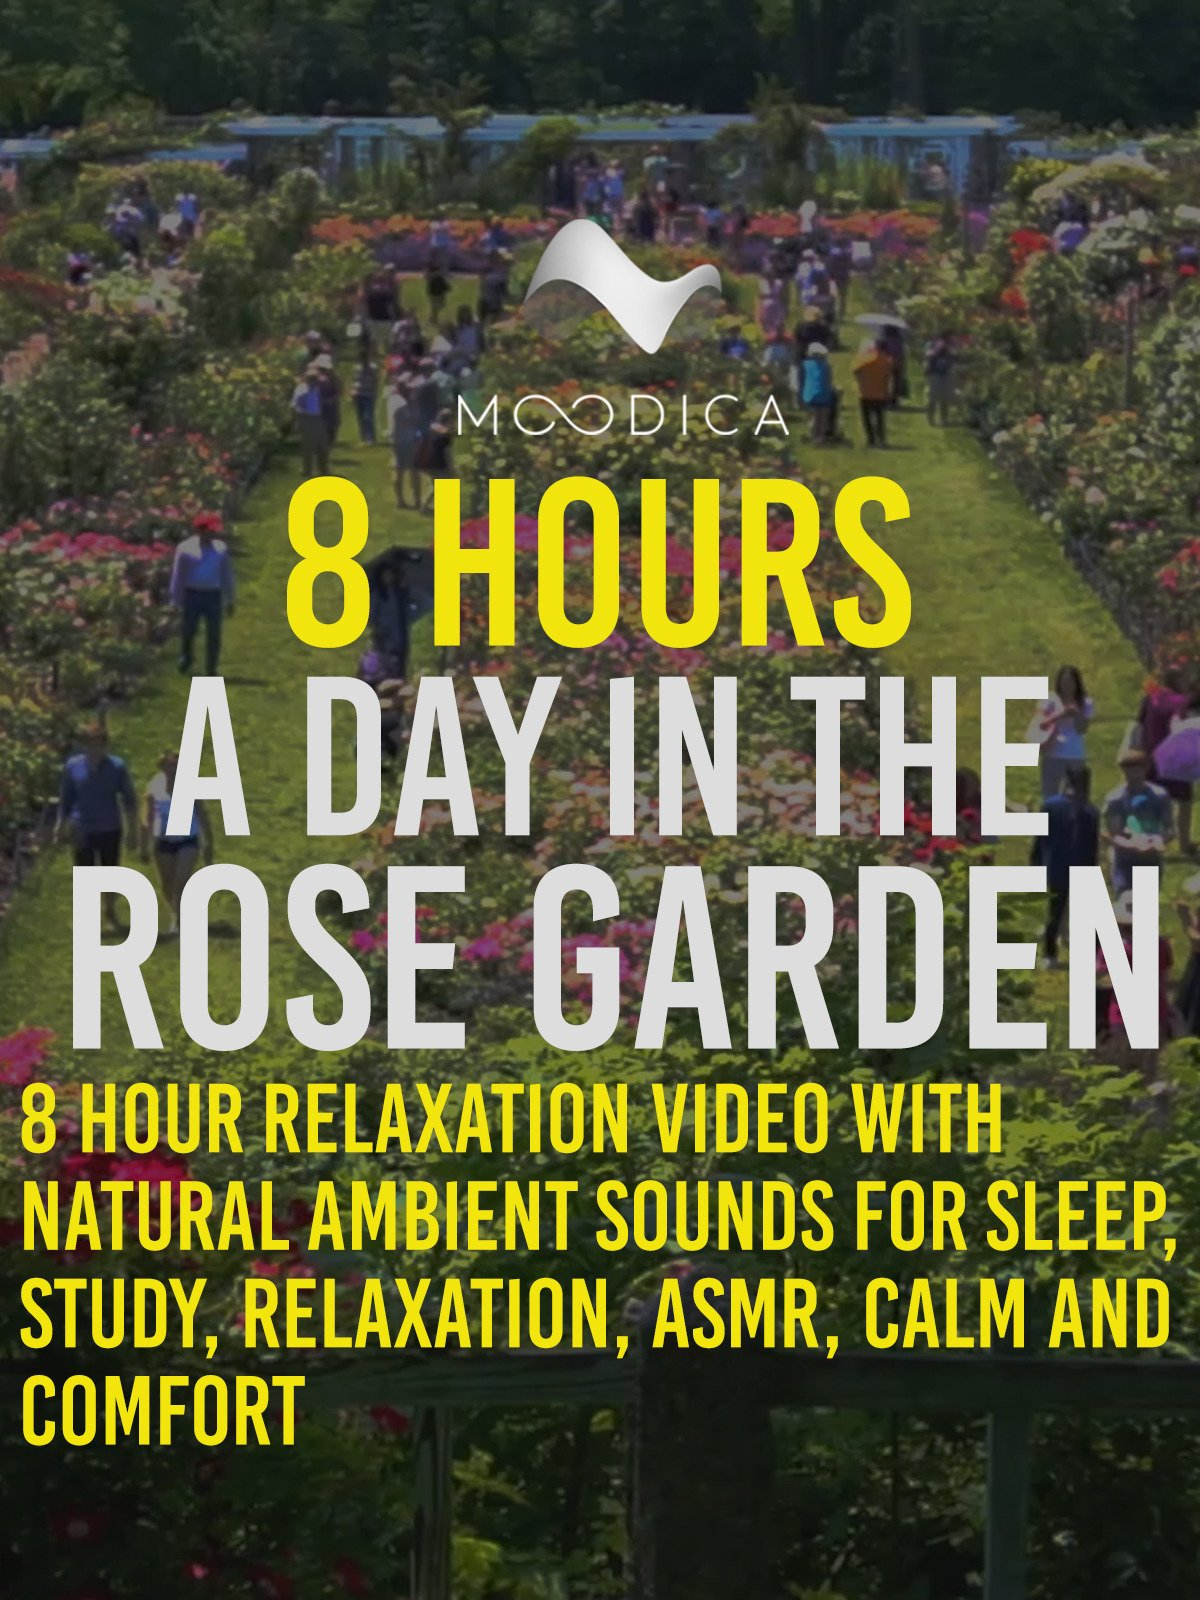 8 Hours: A Day In The Rose Garden: 8 Hour Relaxation Video With Natural Ambient Sounds for Sleep, Study, Relaxation, ASMR, Calm and Comfort